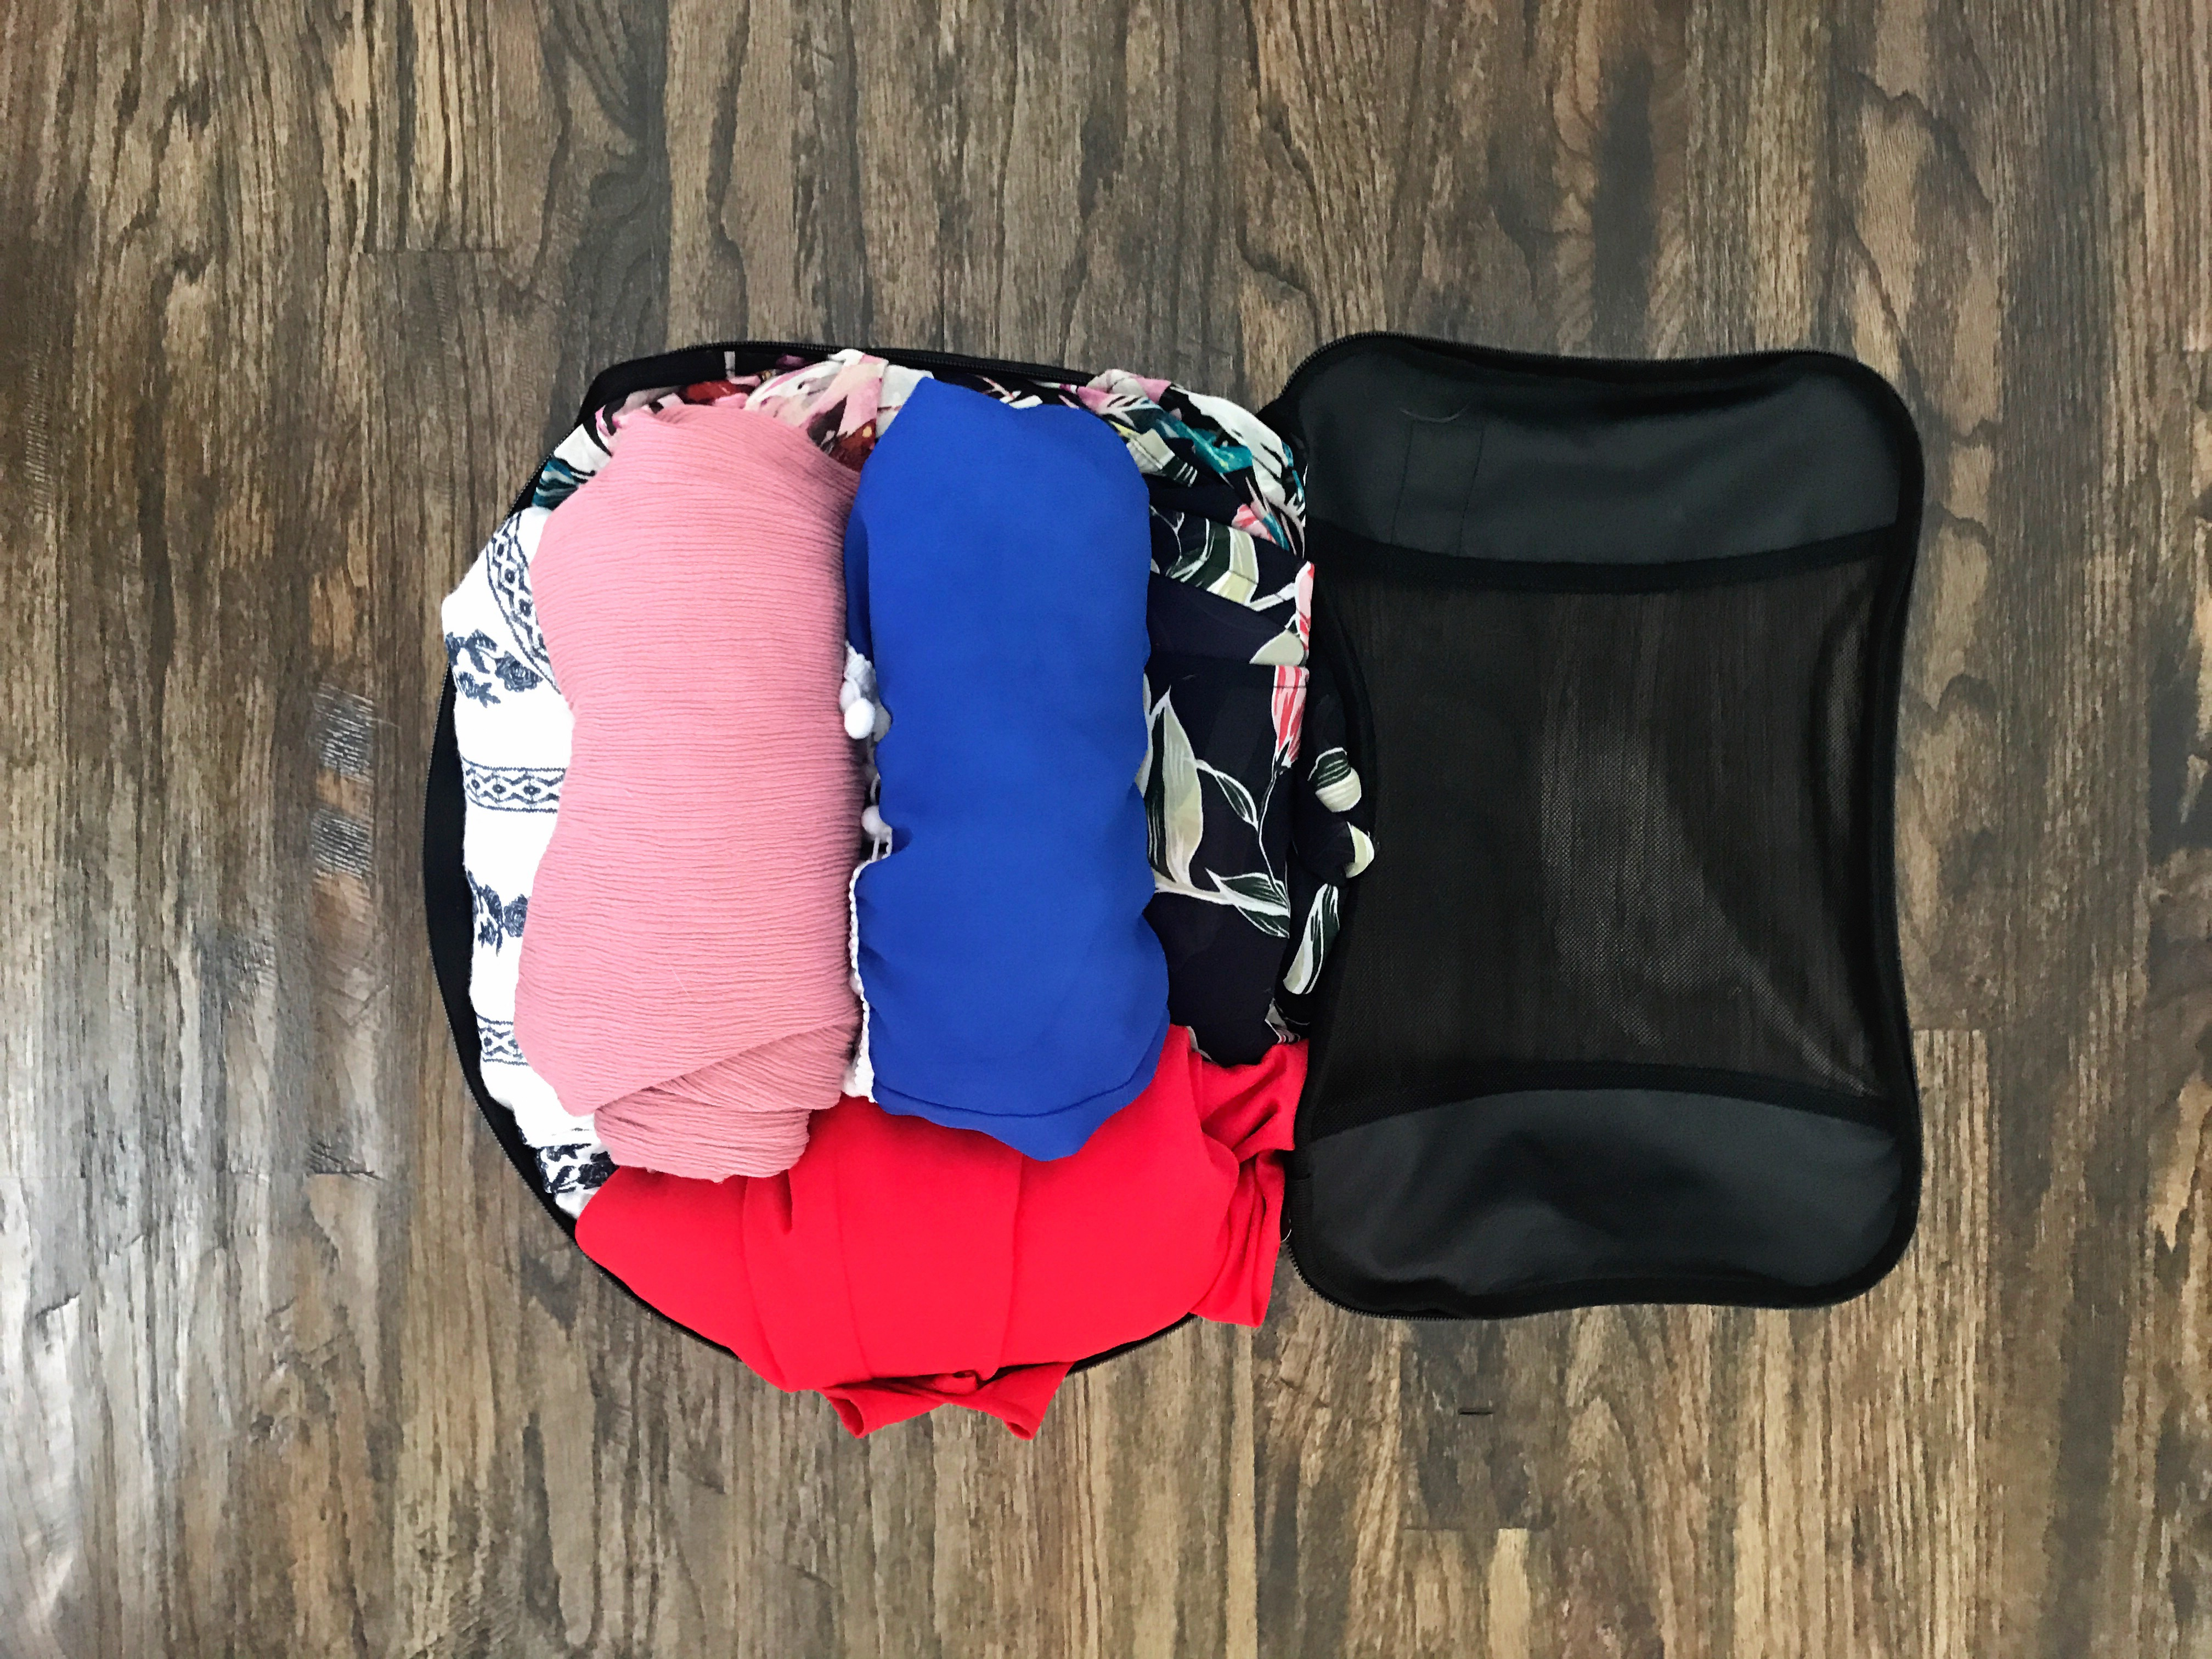 How To Pack For Italy With Only A Carry-On Suitcase • The Miles Genie